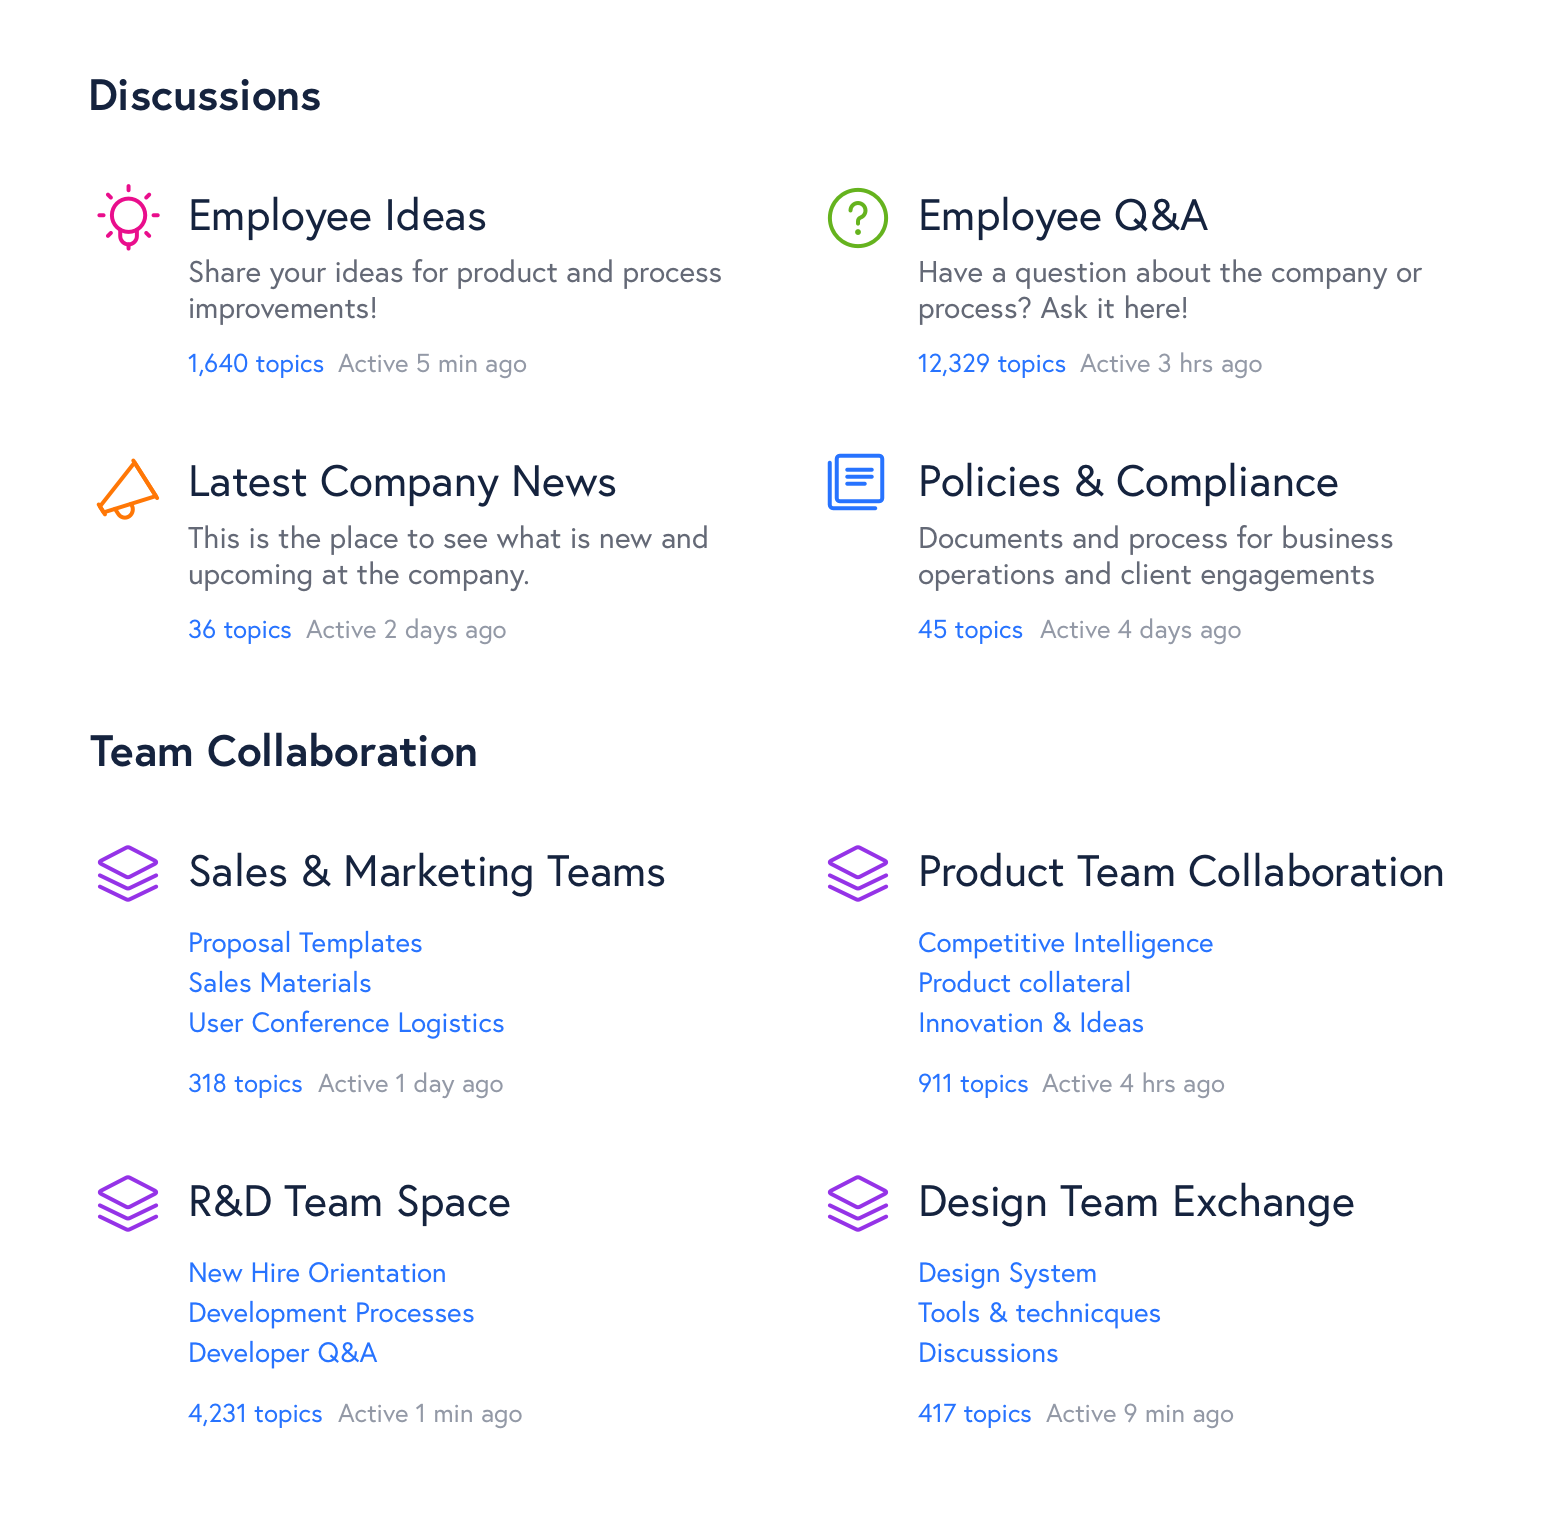 Employee Collaboration and Knowledge Sharing Hub